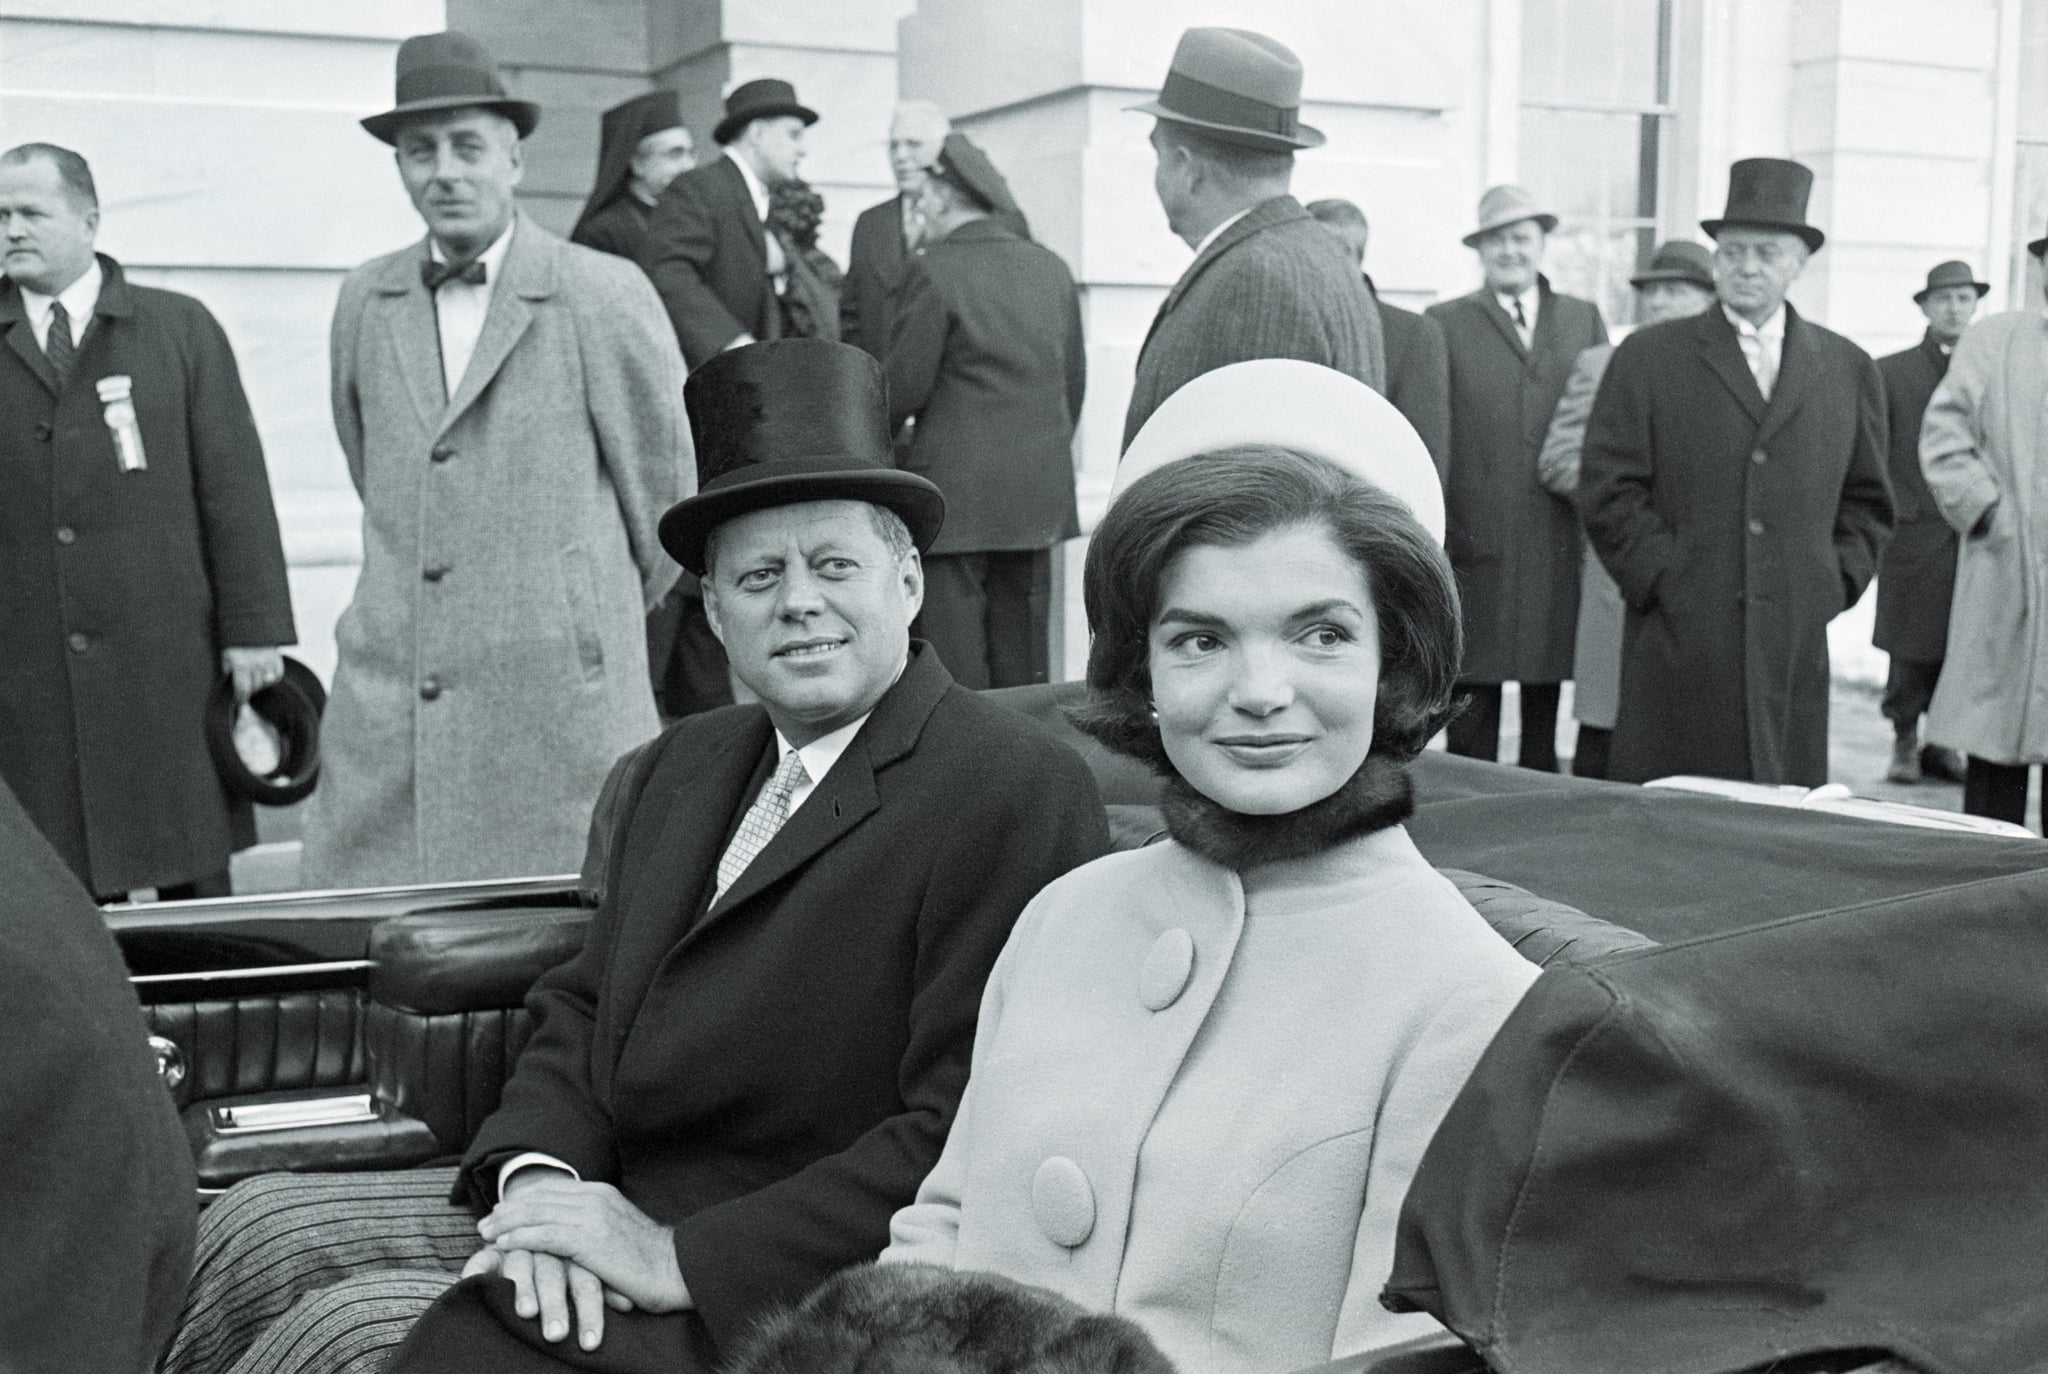 (Original Caption) 1/20/1961-Washington, DC-MArried couple, US President John F Kennedy (1917 - 1963) and First Lady Jacqueline Kennedy (nee Bouvier, later Onassis, 1929 – 1994) leave the capital building by car shortly after the former took the oath of office as President of the United States, Washington DC, January 20, 1961. President Kennedy, 43, the youngest man ever elected to the Presidency called for a global alliance against